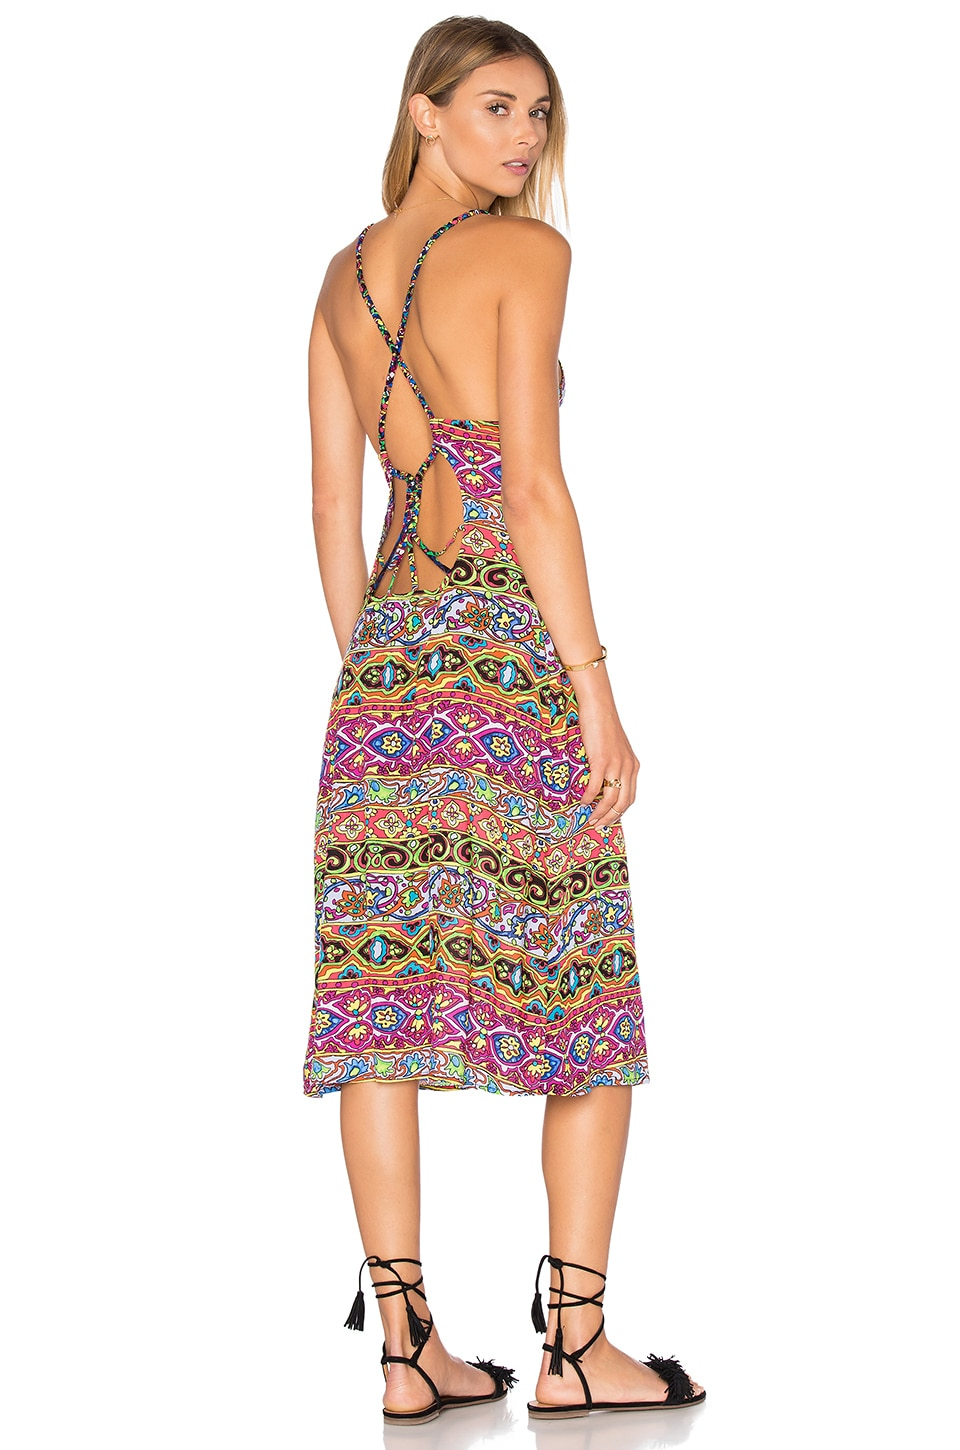 Nanette Lepore Carnaval Midi Dress in Multi